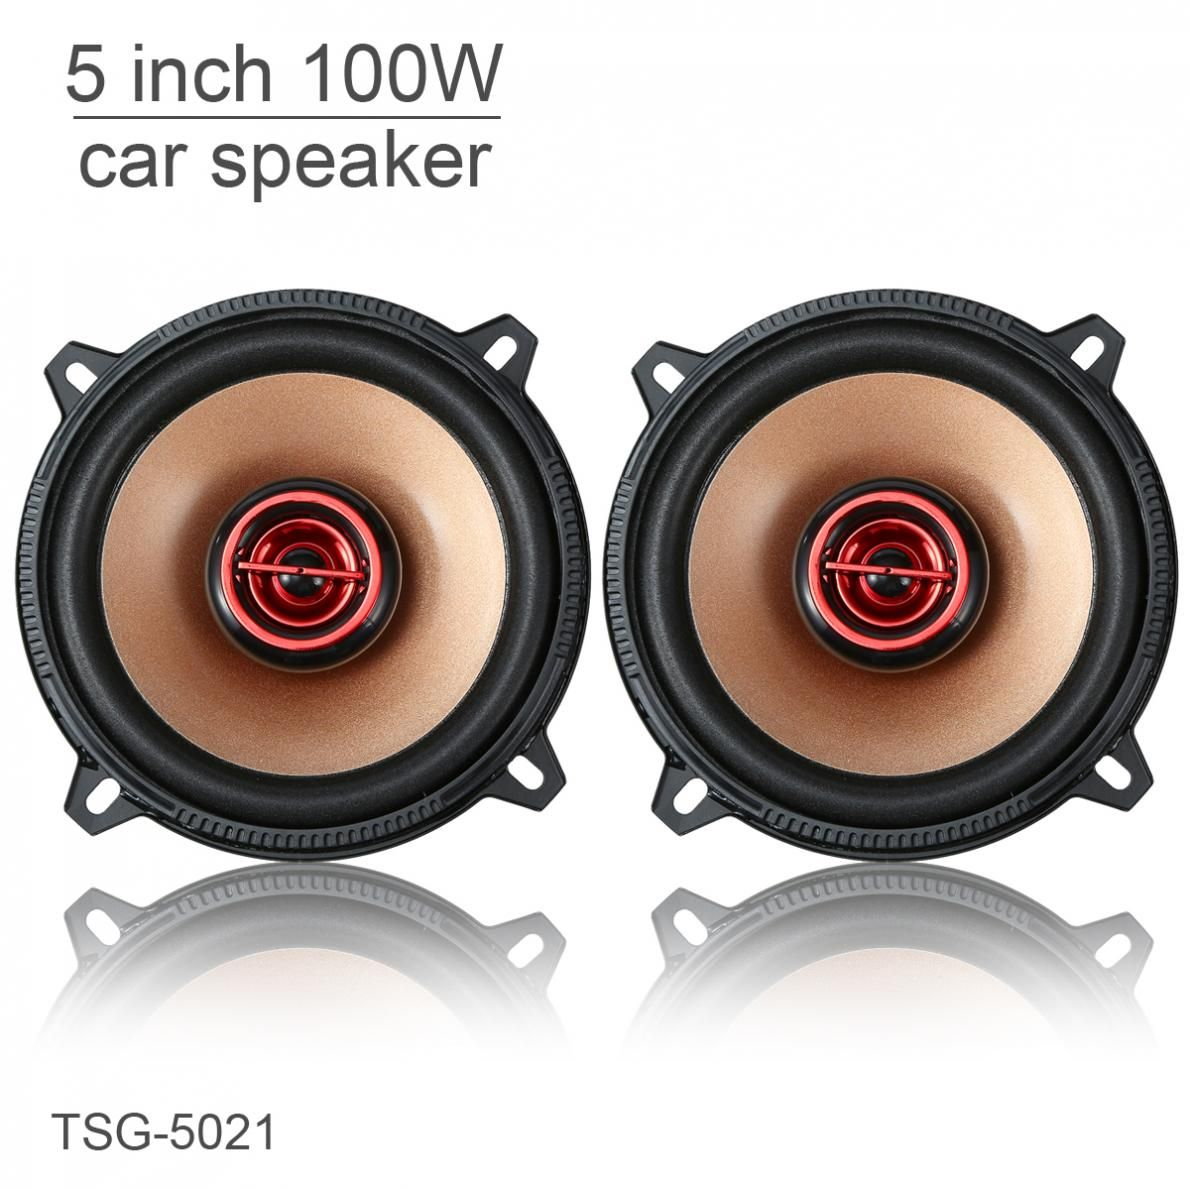 2Pcs 5 Inch Speaker 100W Car Coaxial Speaker HiFi Perfect Sound Audio Stereo Car Speakers Loudspeaker For Cars